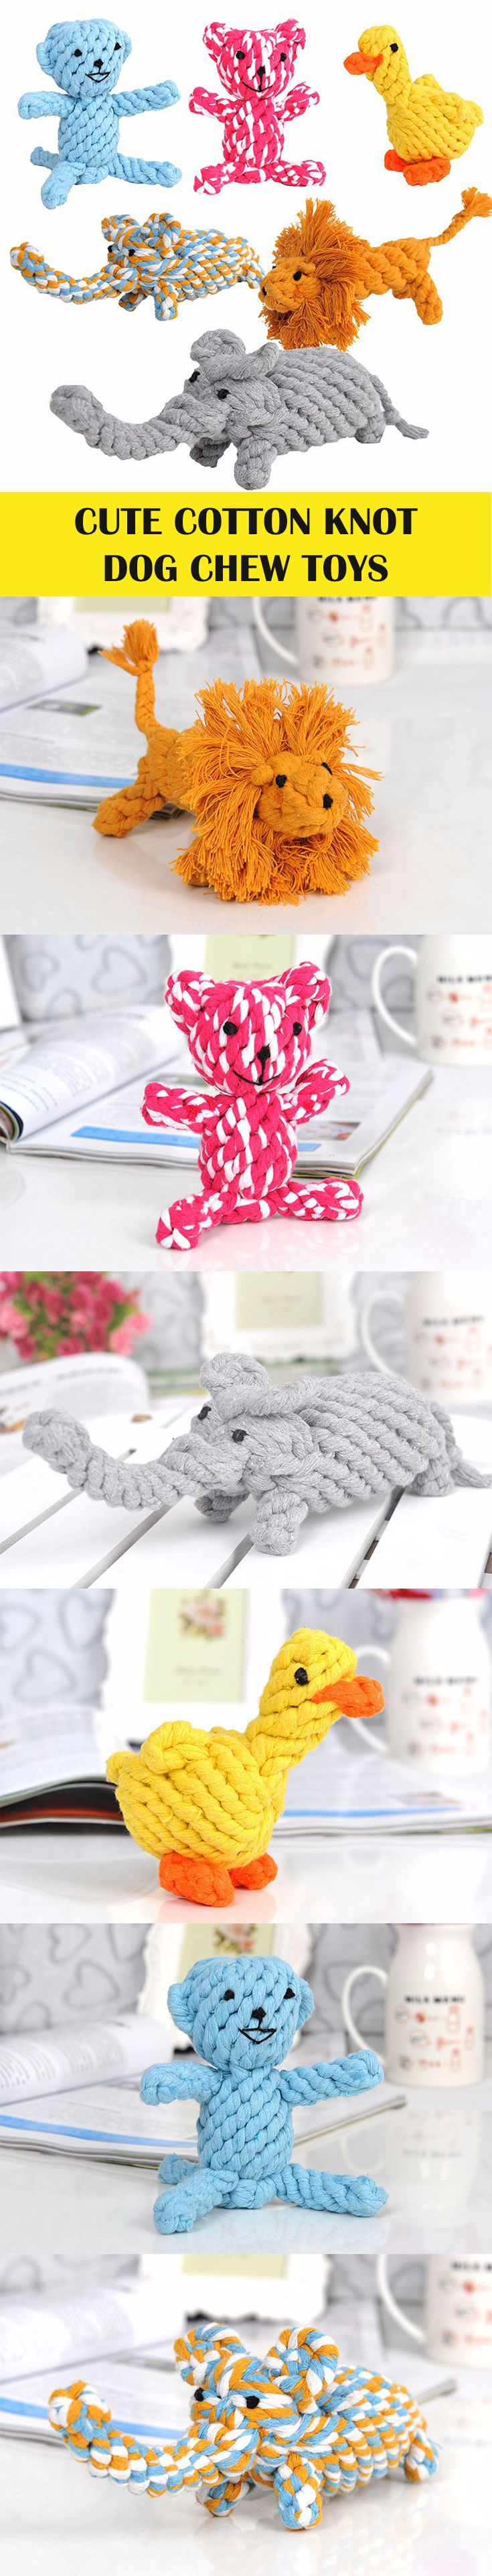 Cute chewing cotton animals for dogs. Lion, bear, elephant, duck, monkey. Knot rope dog toy. Toy for dogs.